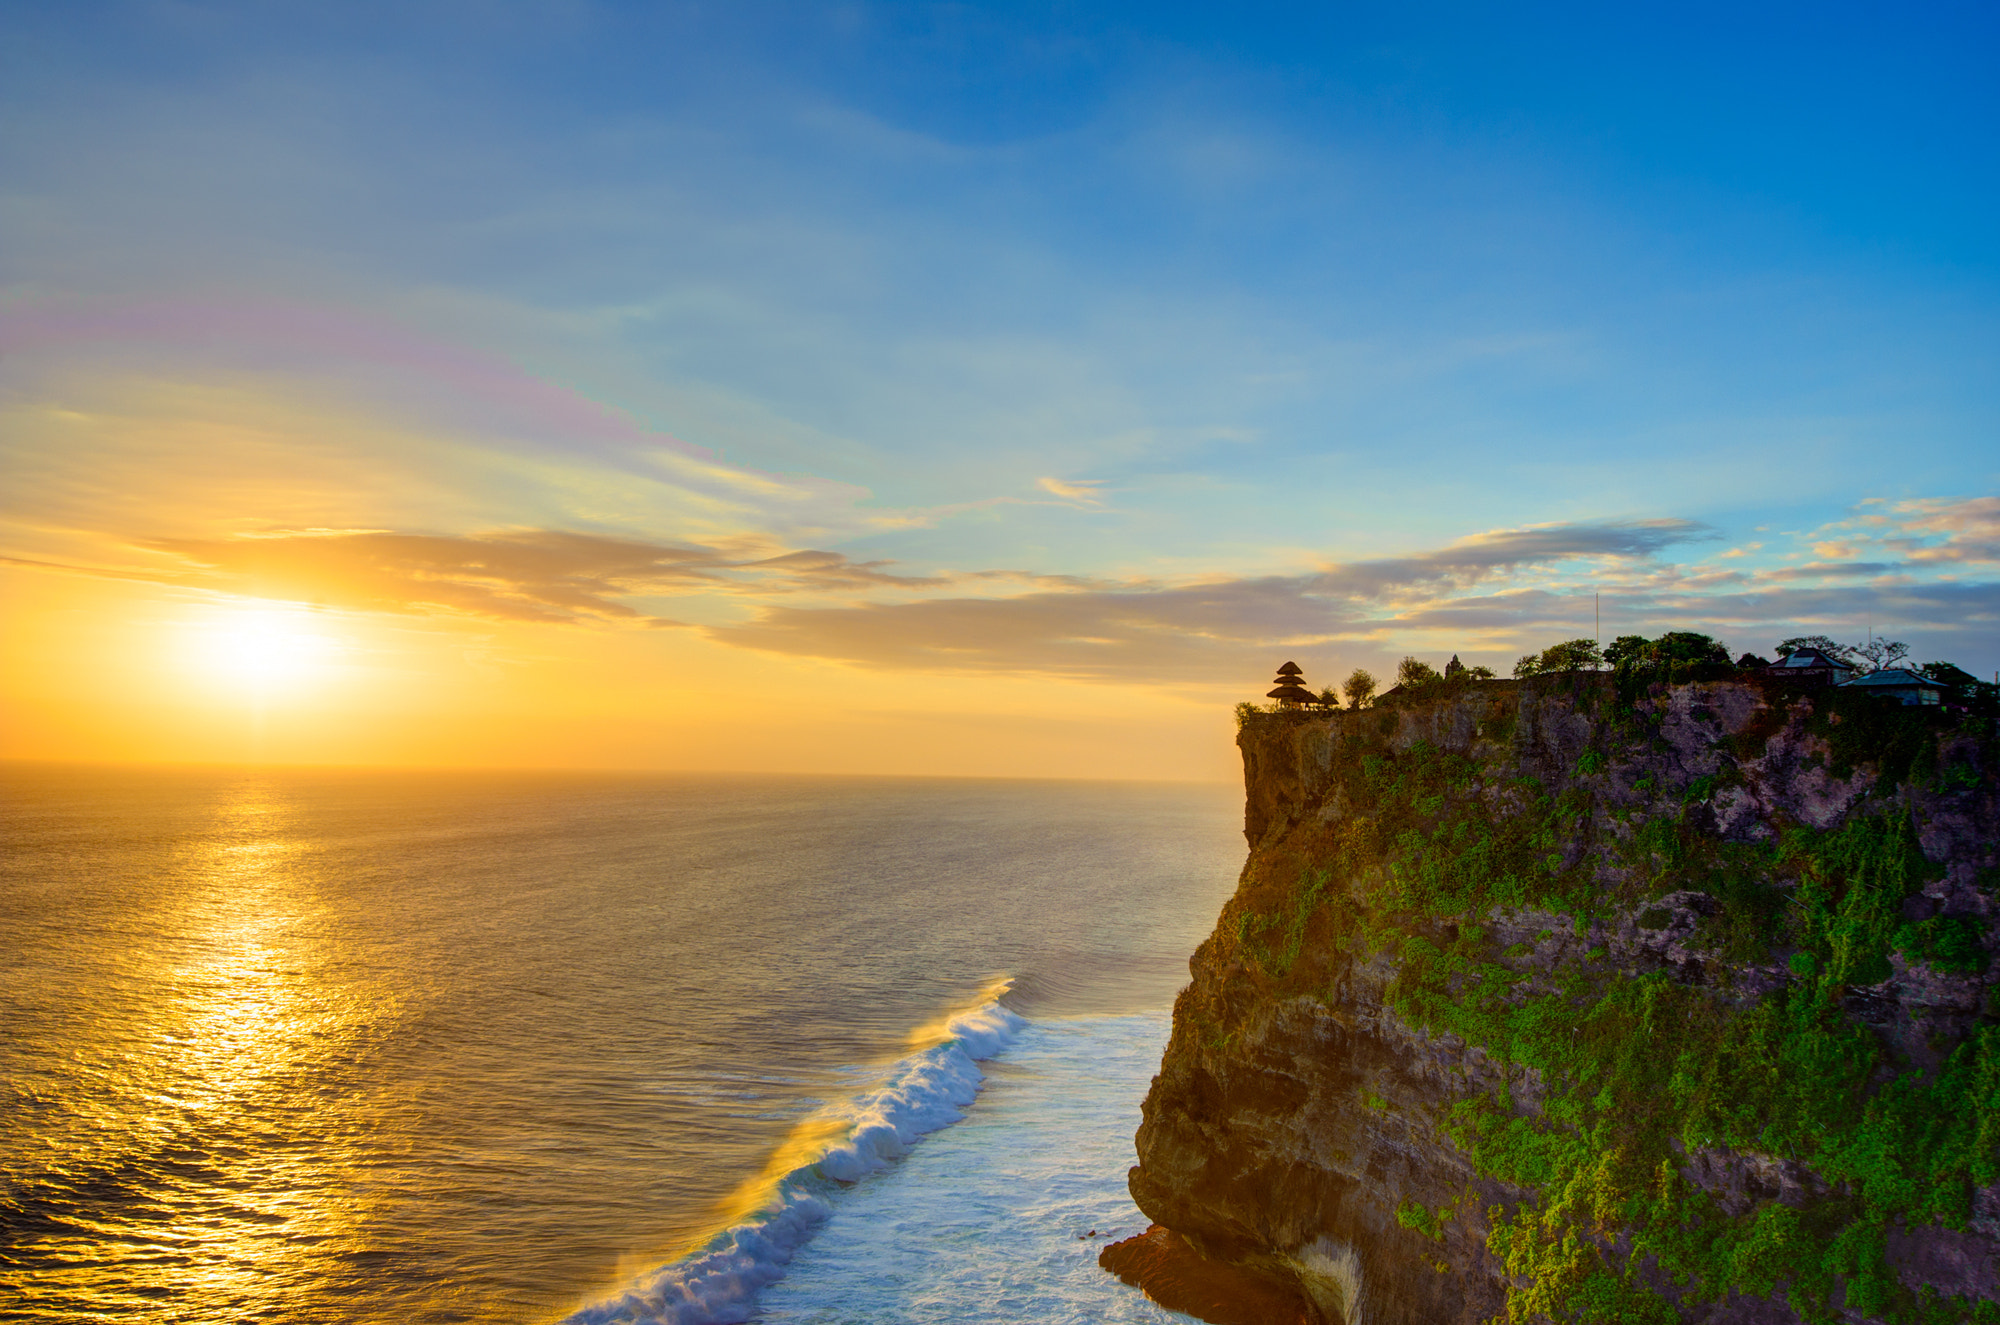 Photograph Uluwatu Temple by Markus Divis on 500px